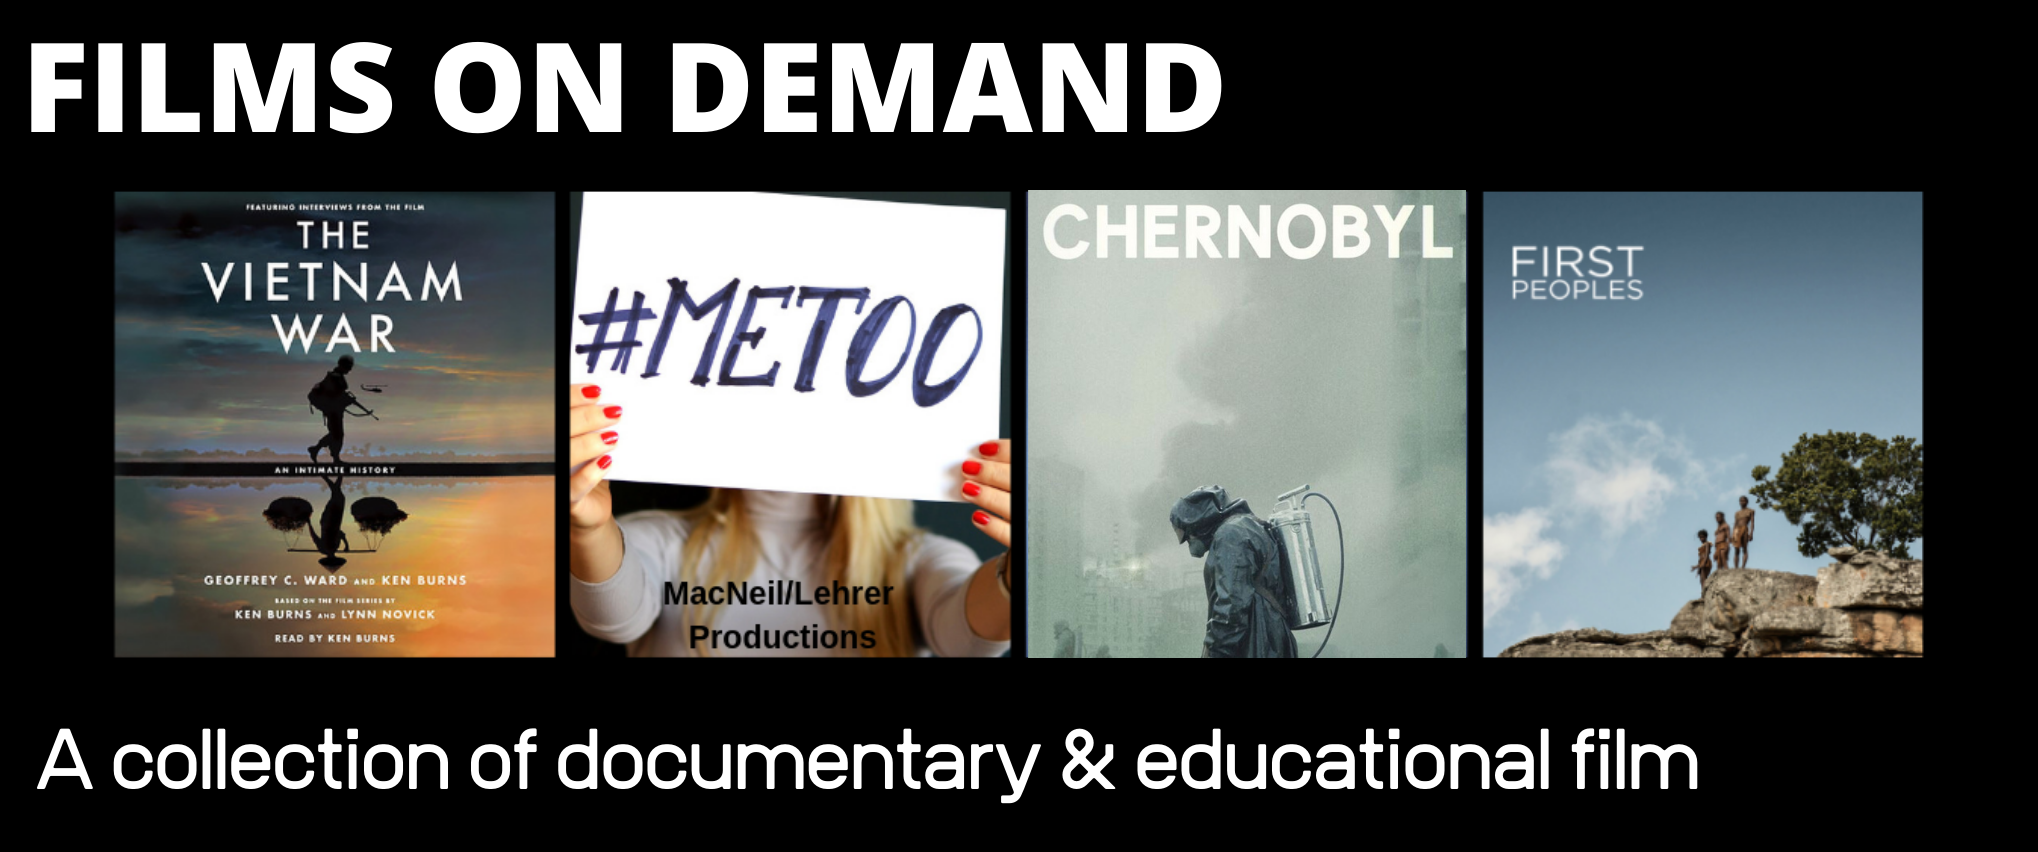 Poster art for the documentary series The Vietnam War by Ken Burns, #MeToo from MacNeil/Lehrer Productions, Chernobyl from HBO, and First Peoples from PBS